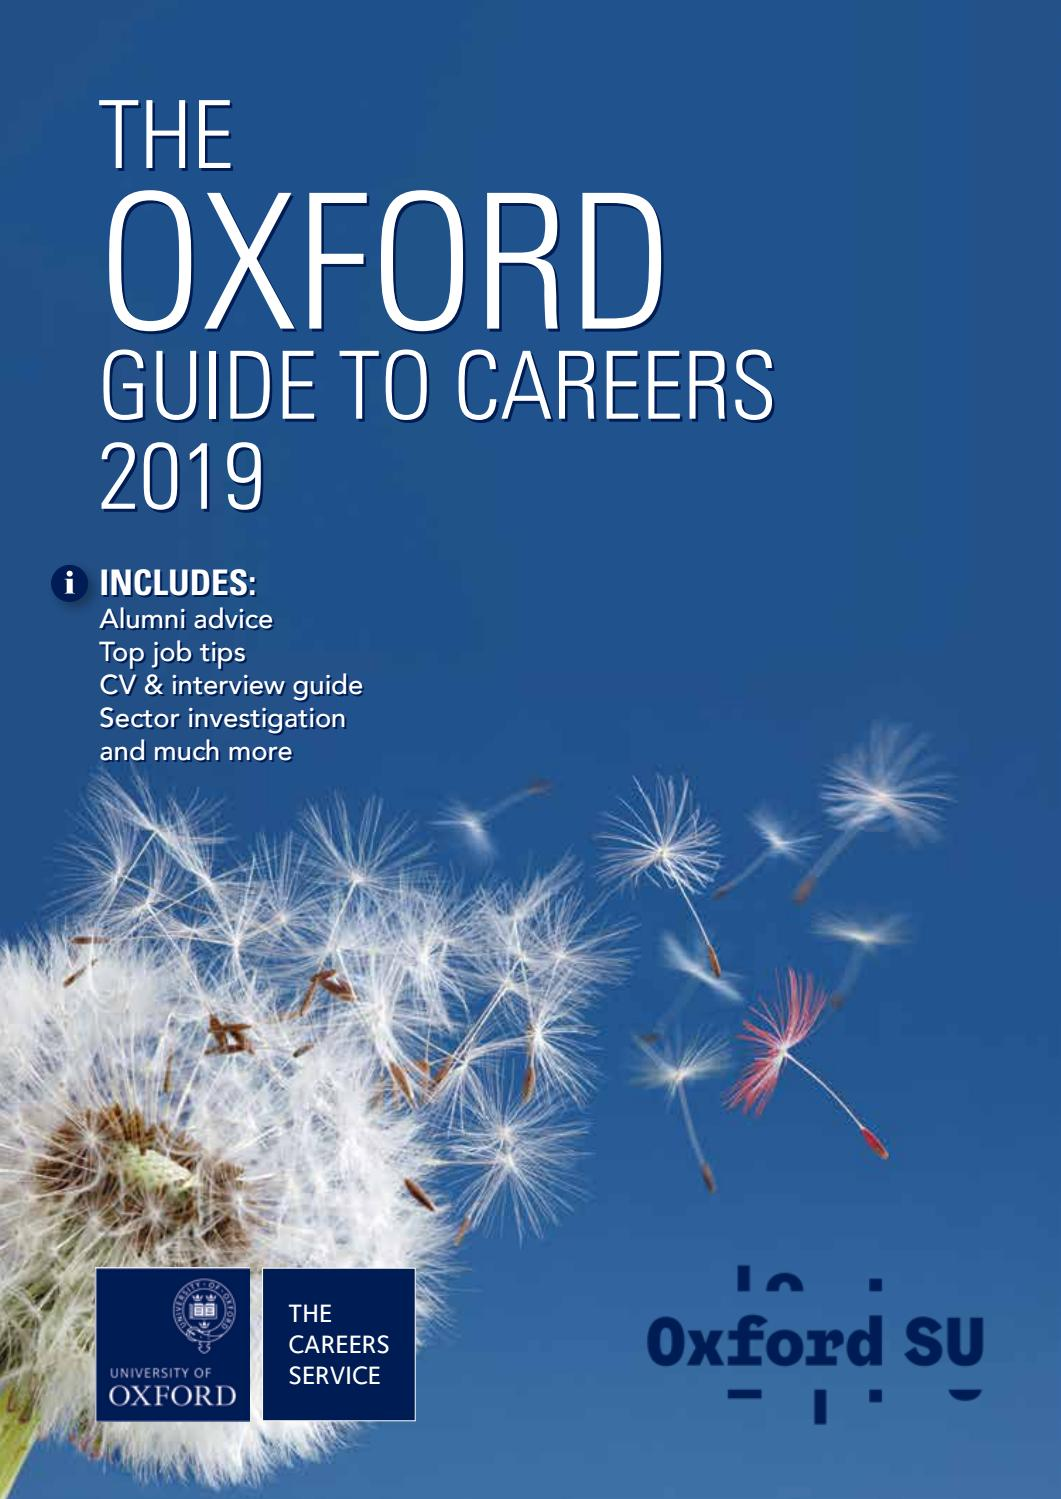 The Oxford Guide to Careers 2019 by Oxford University